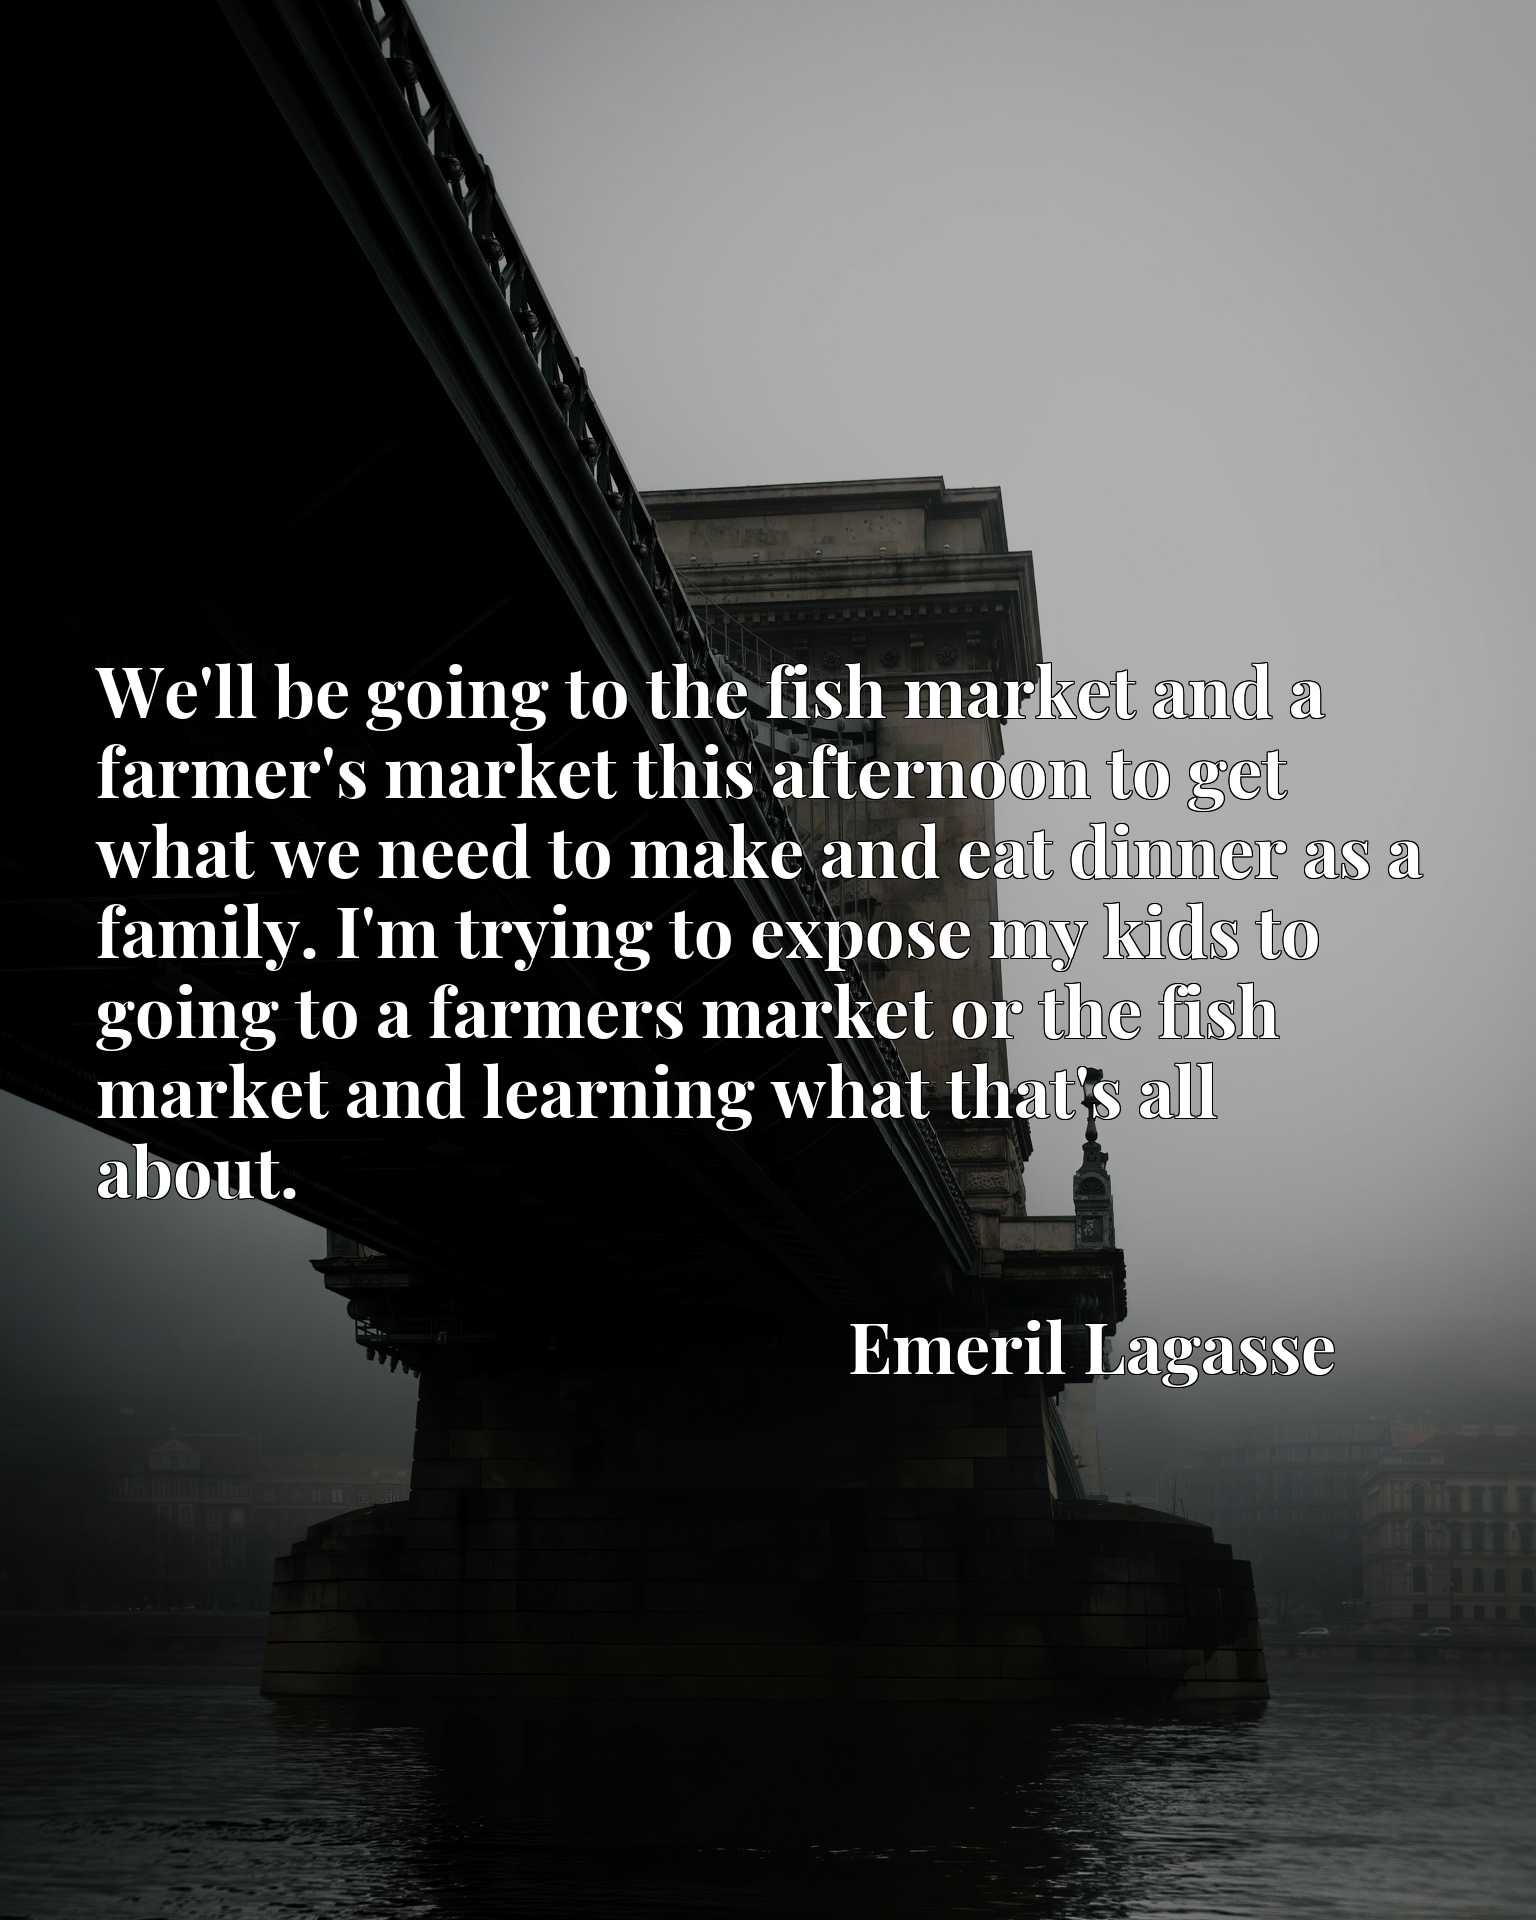 We'll be going to the fish market and a farmer's market this afternoon to get what we need to make and eat dinner as a family. I'm trying to expose my kids to going to a farmers market or the fish market and learning what that's all about.